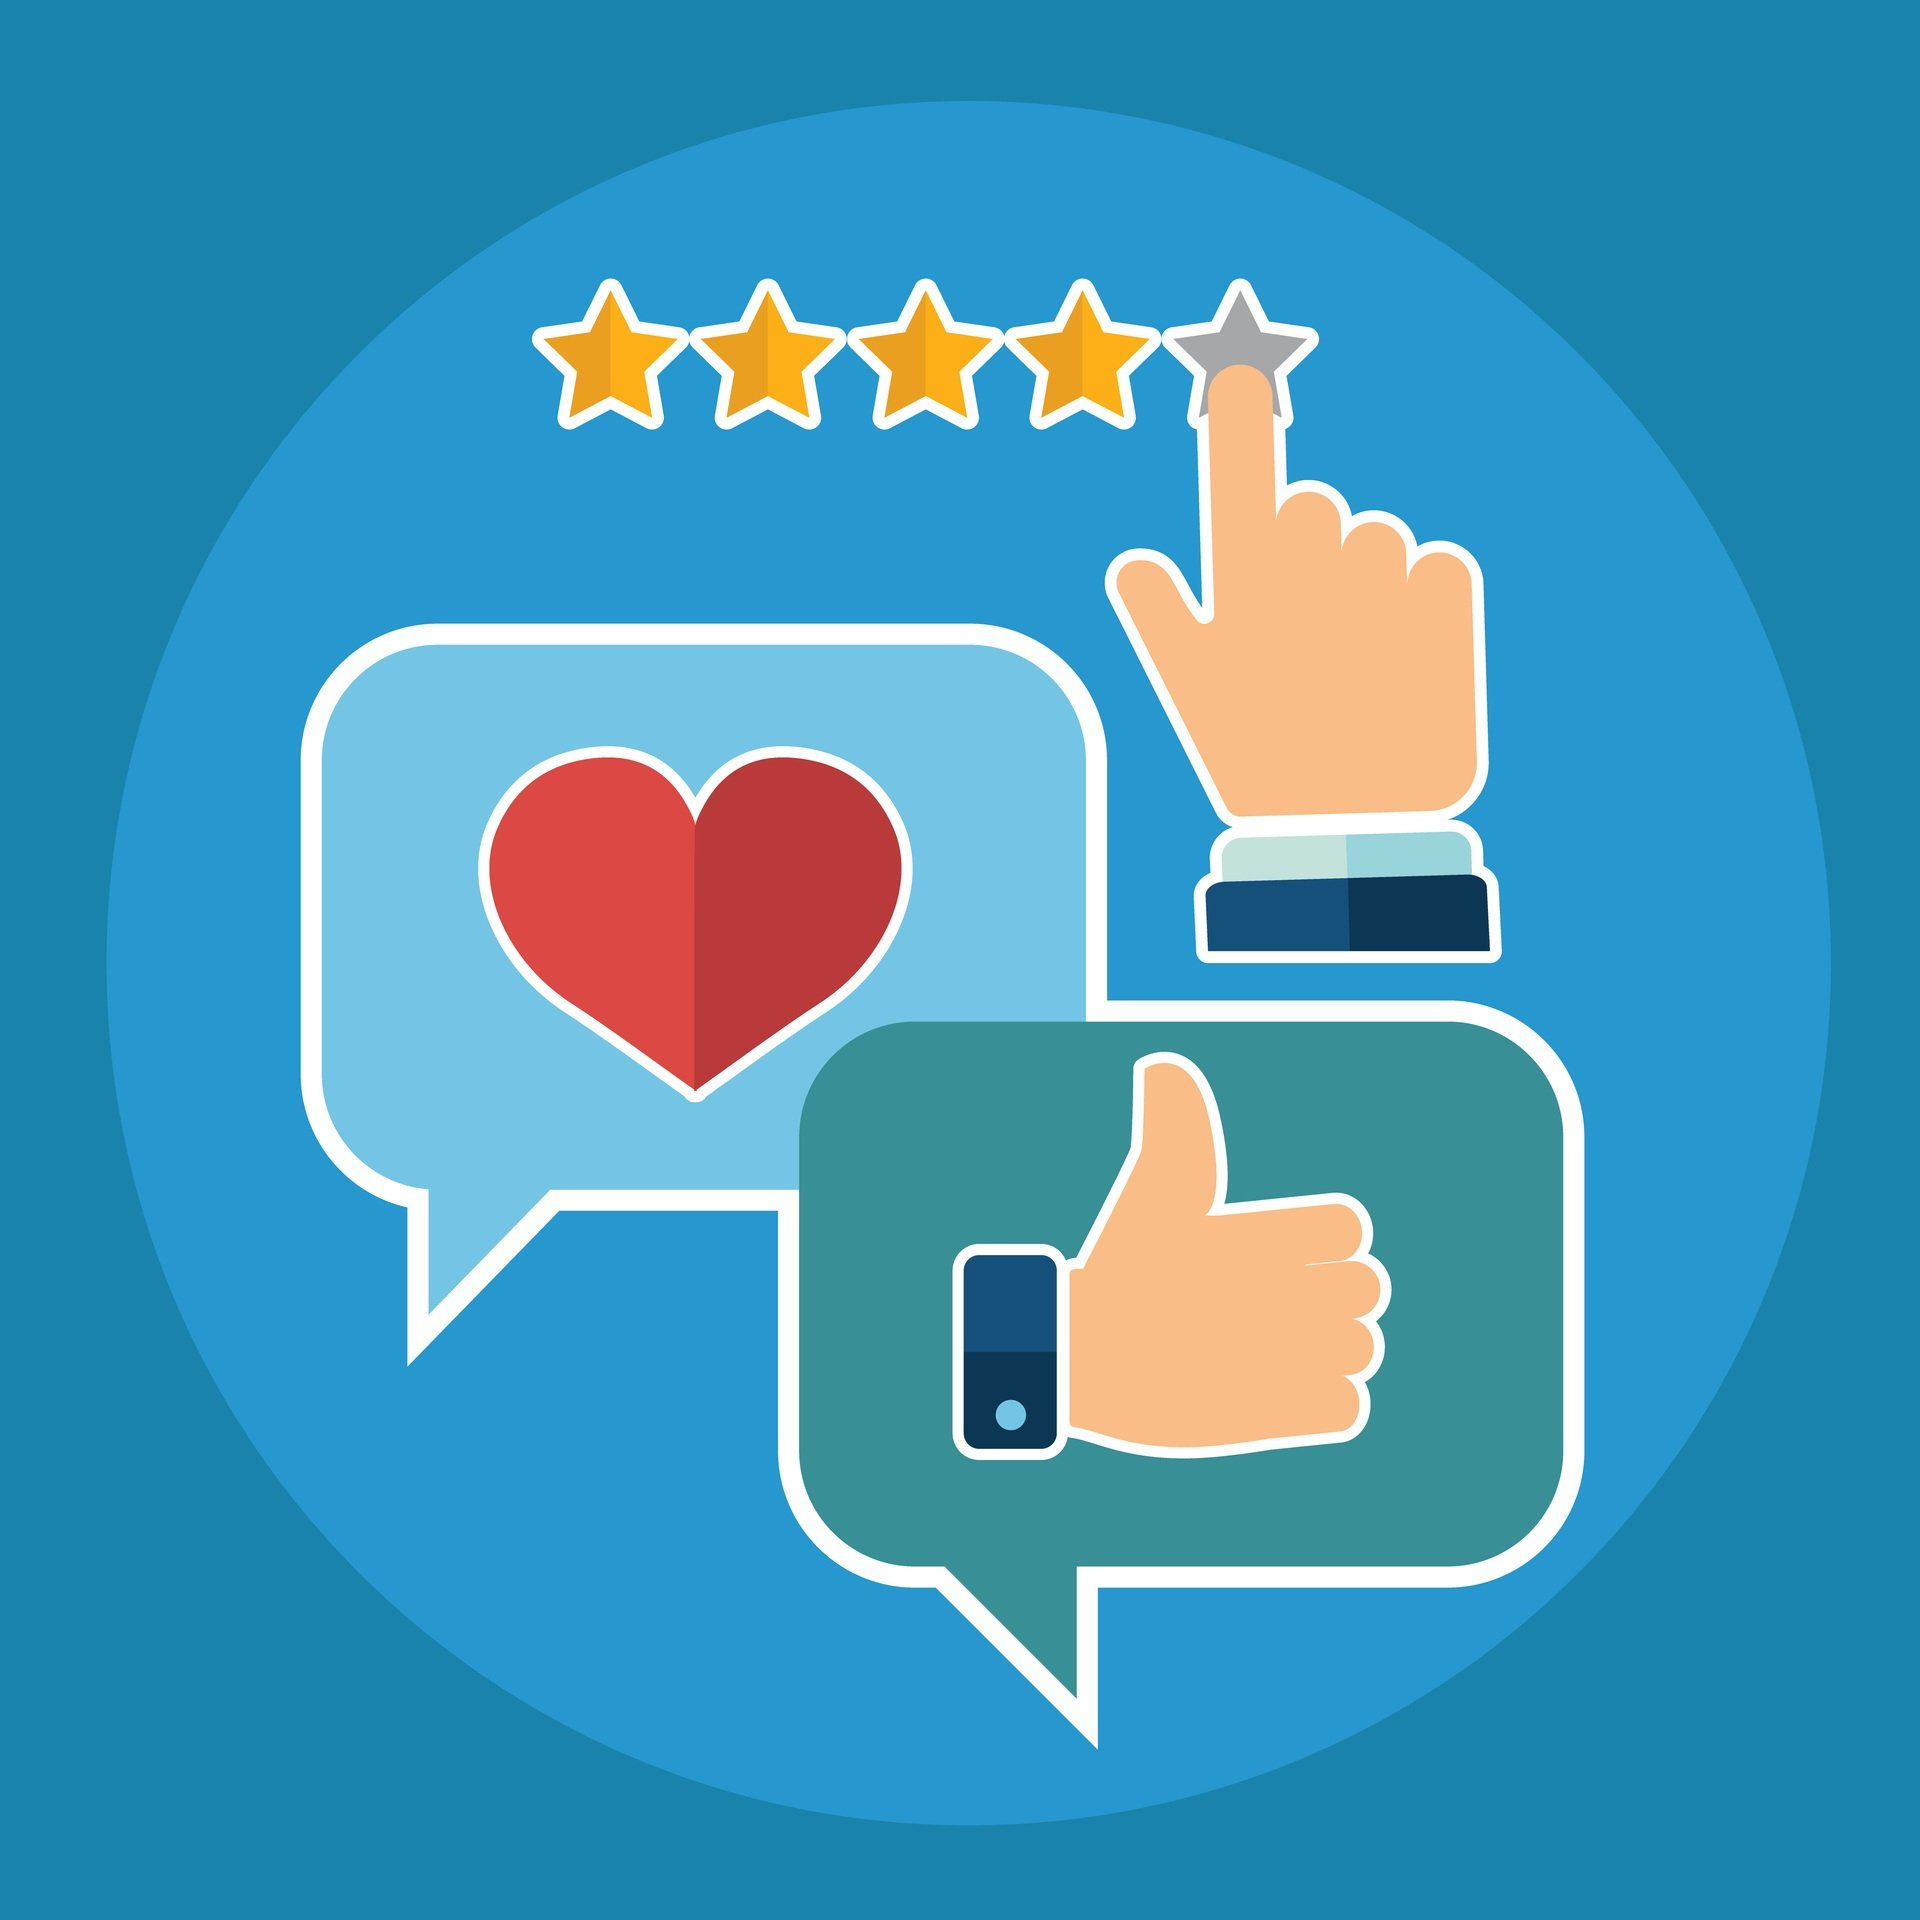 Google Classroom Review: Pros And Cons Of Using Google Classroom In eLearning